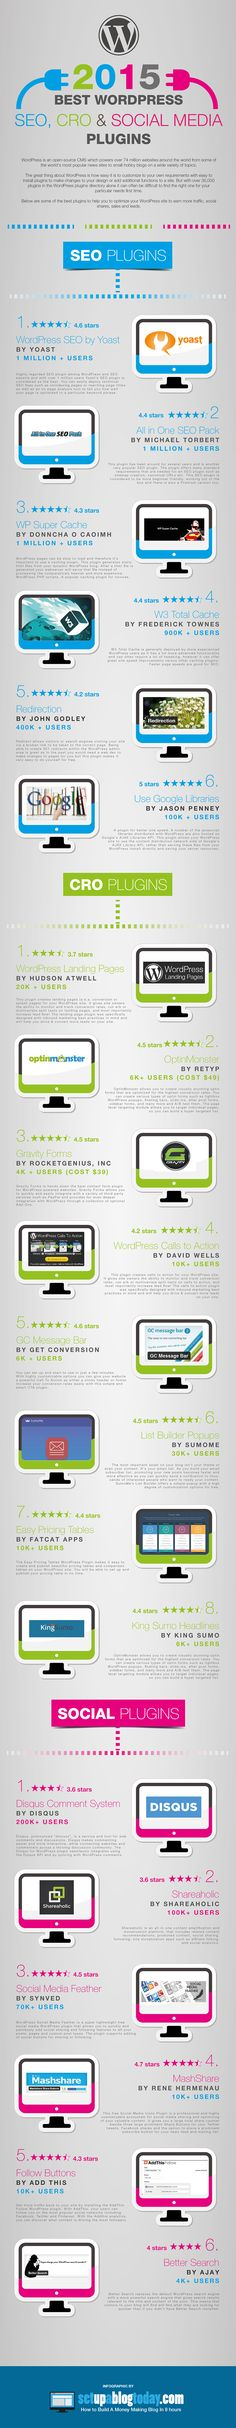 Best WordPress Plugins for SEO #SEOtips and tricks #infographic